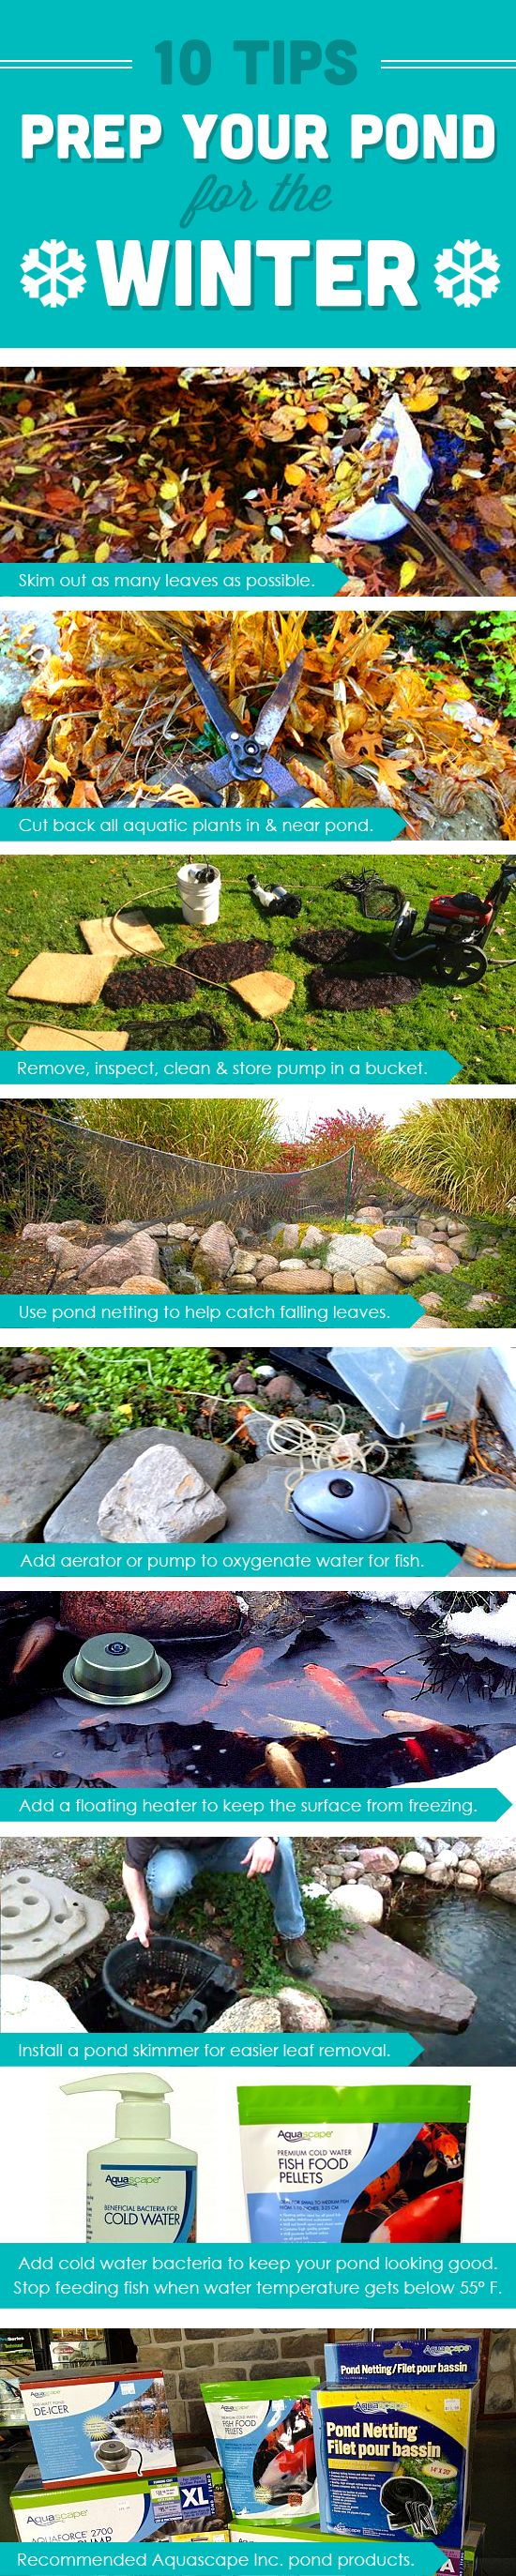 10 Tips on how to winterize your pond. Click through for more details and instructions on each step.